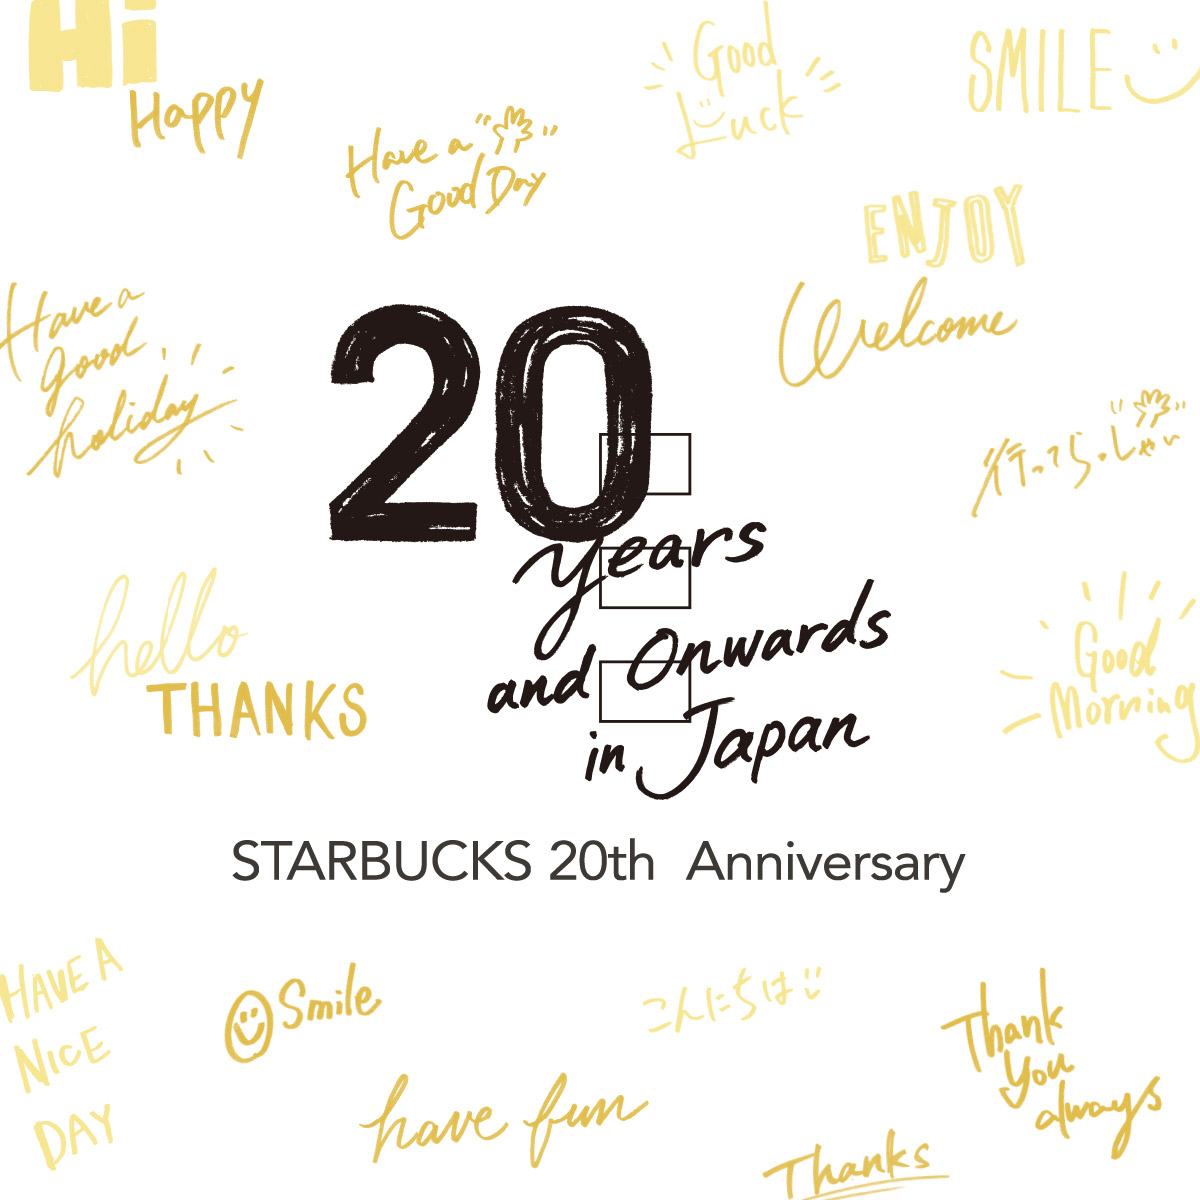 20years and Onwards in Japan